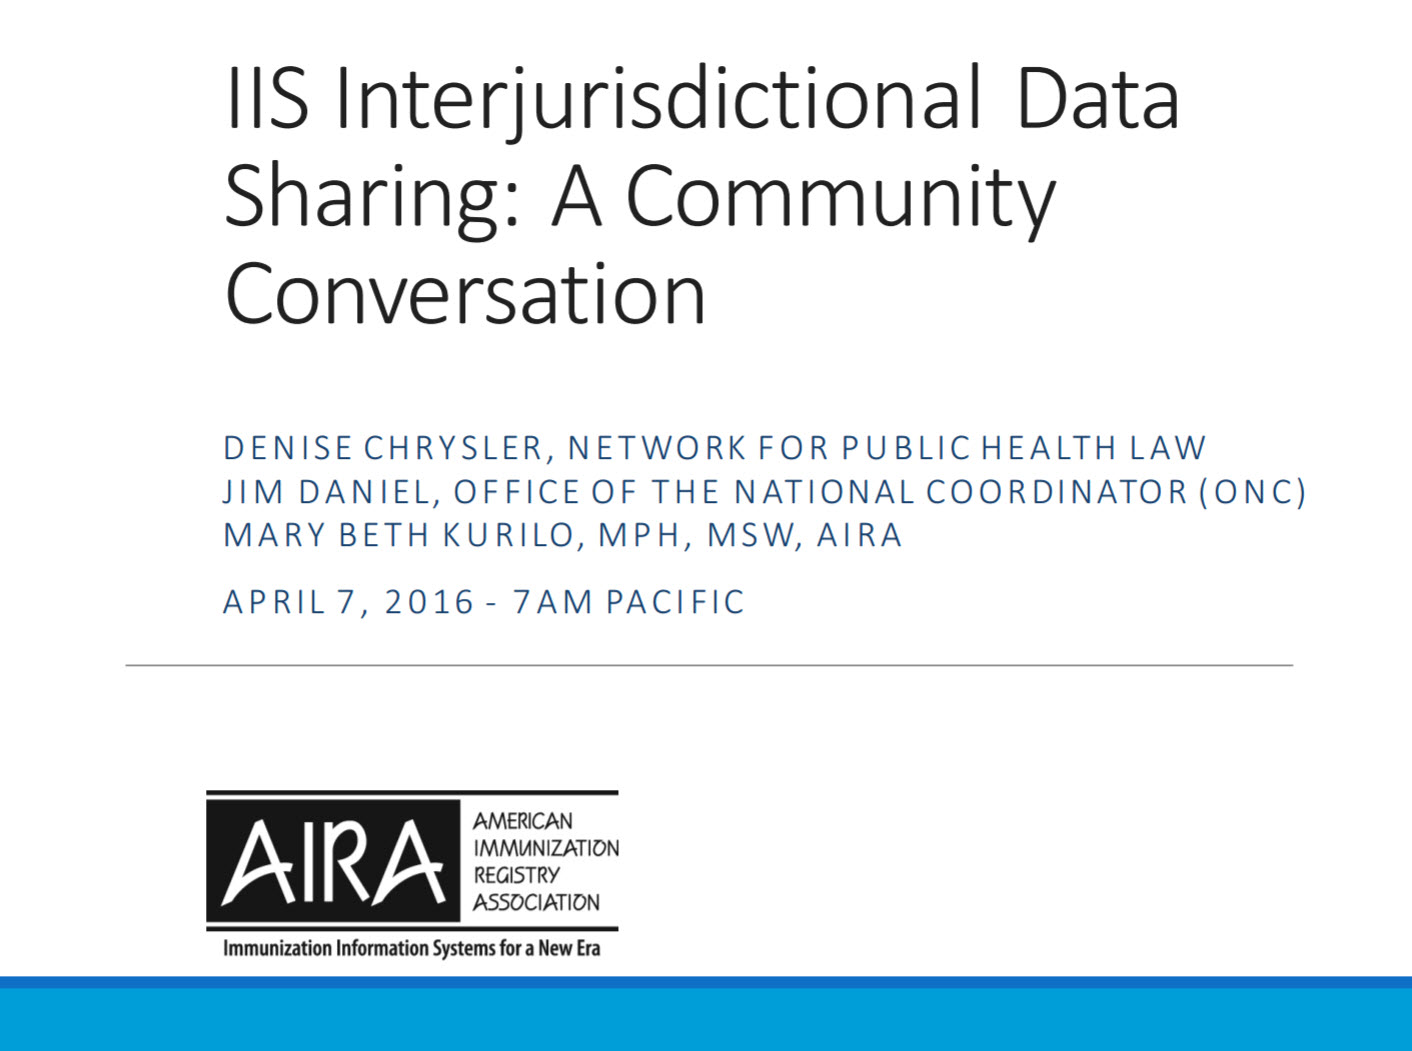 A Community Conversation about Interjurisdictional Exchange